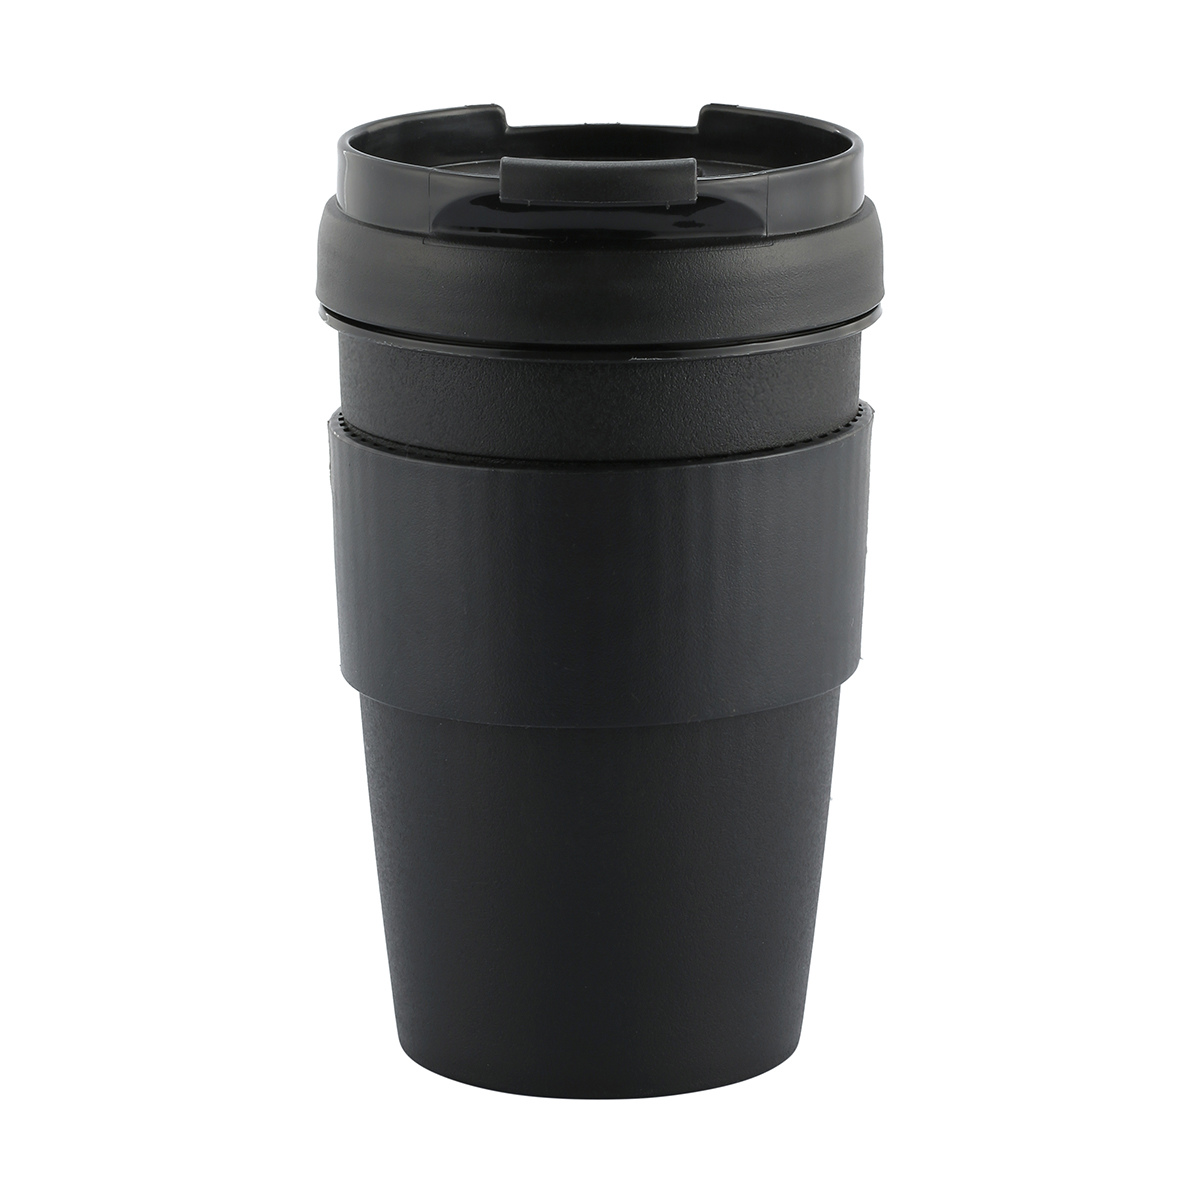 Travel Coffee Cup Black Kmart (With images) Travel